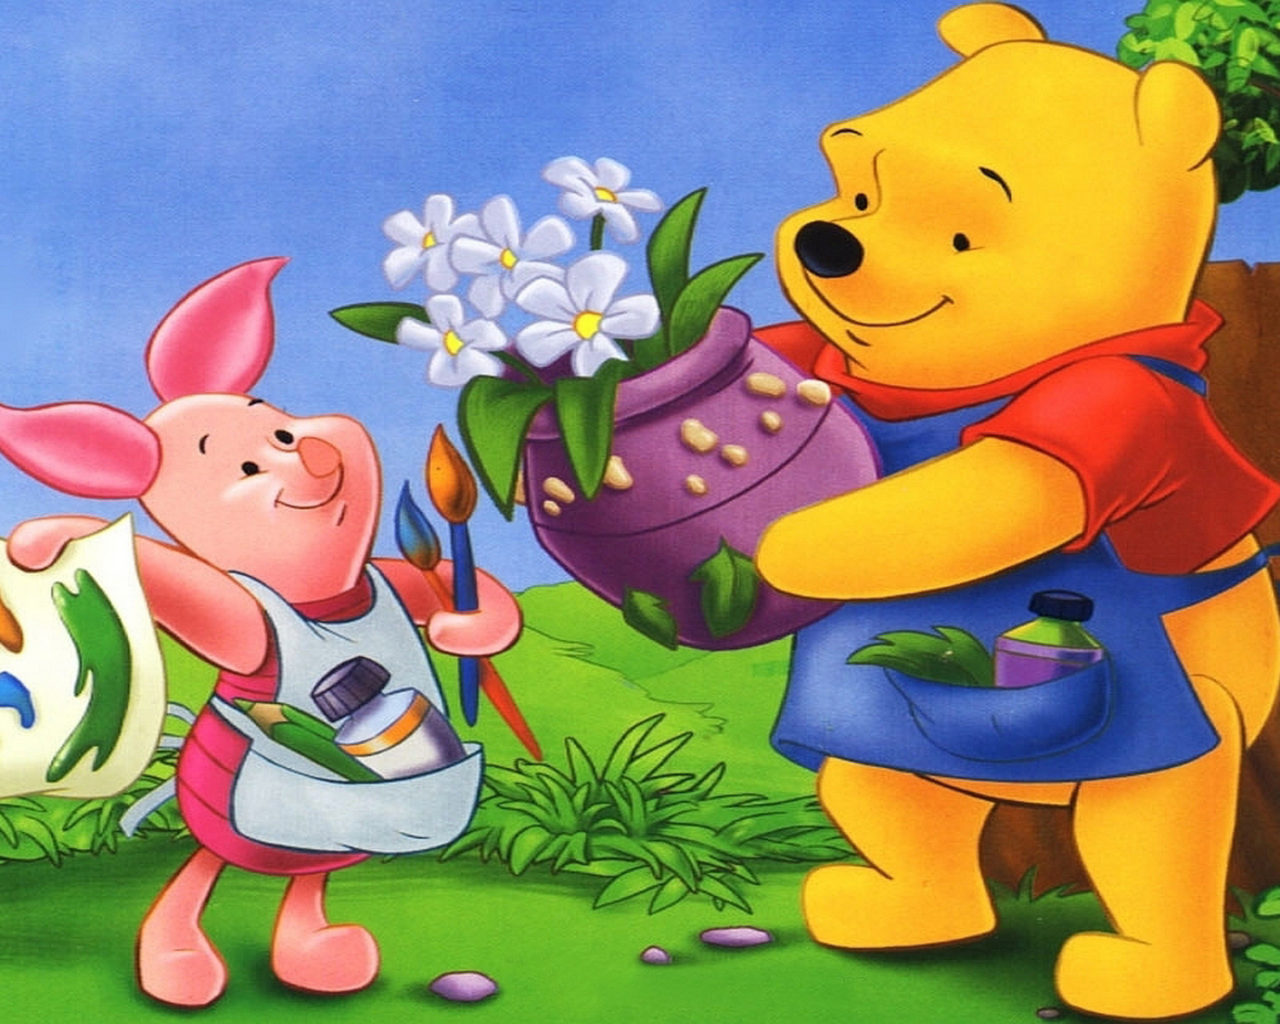 Piglet Wallpaper Iphone Winnie The Pooh And Piglet Vase With Flowers Wallpapers Hd